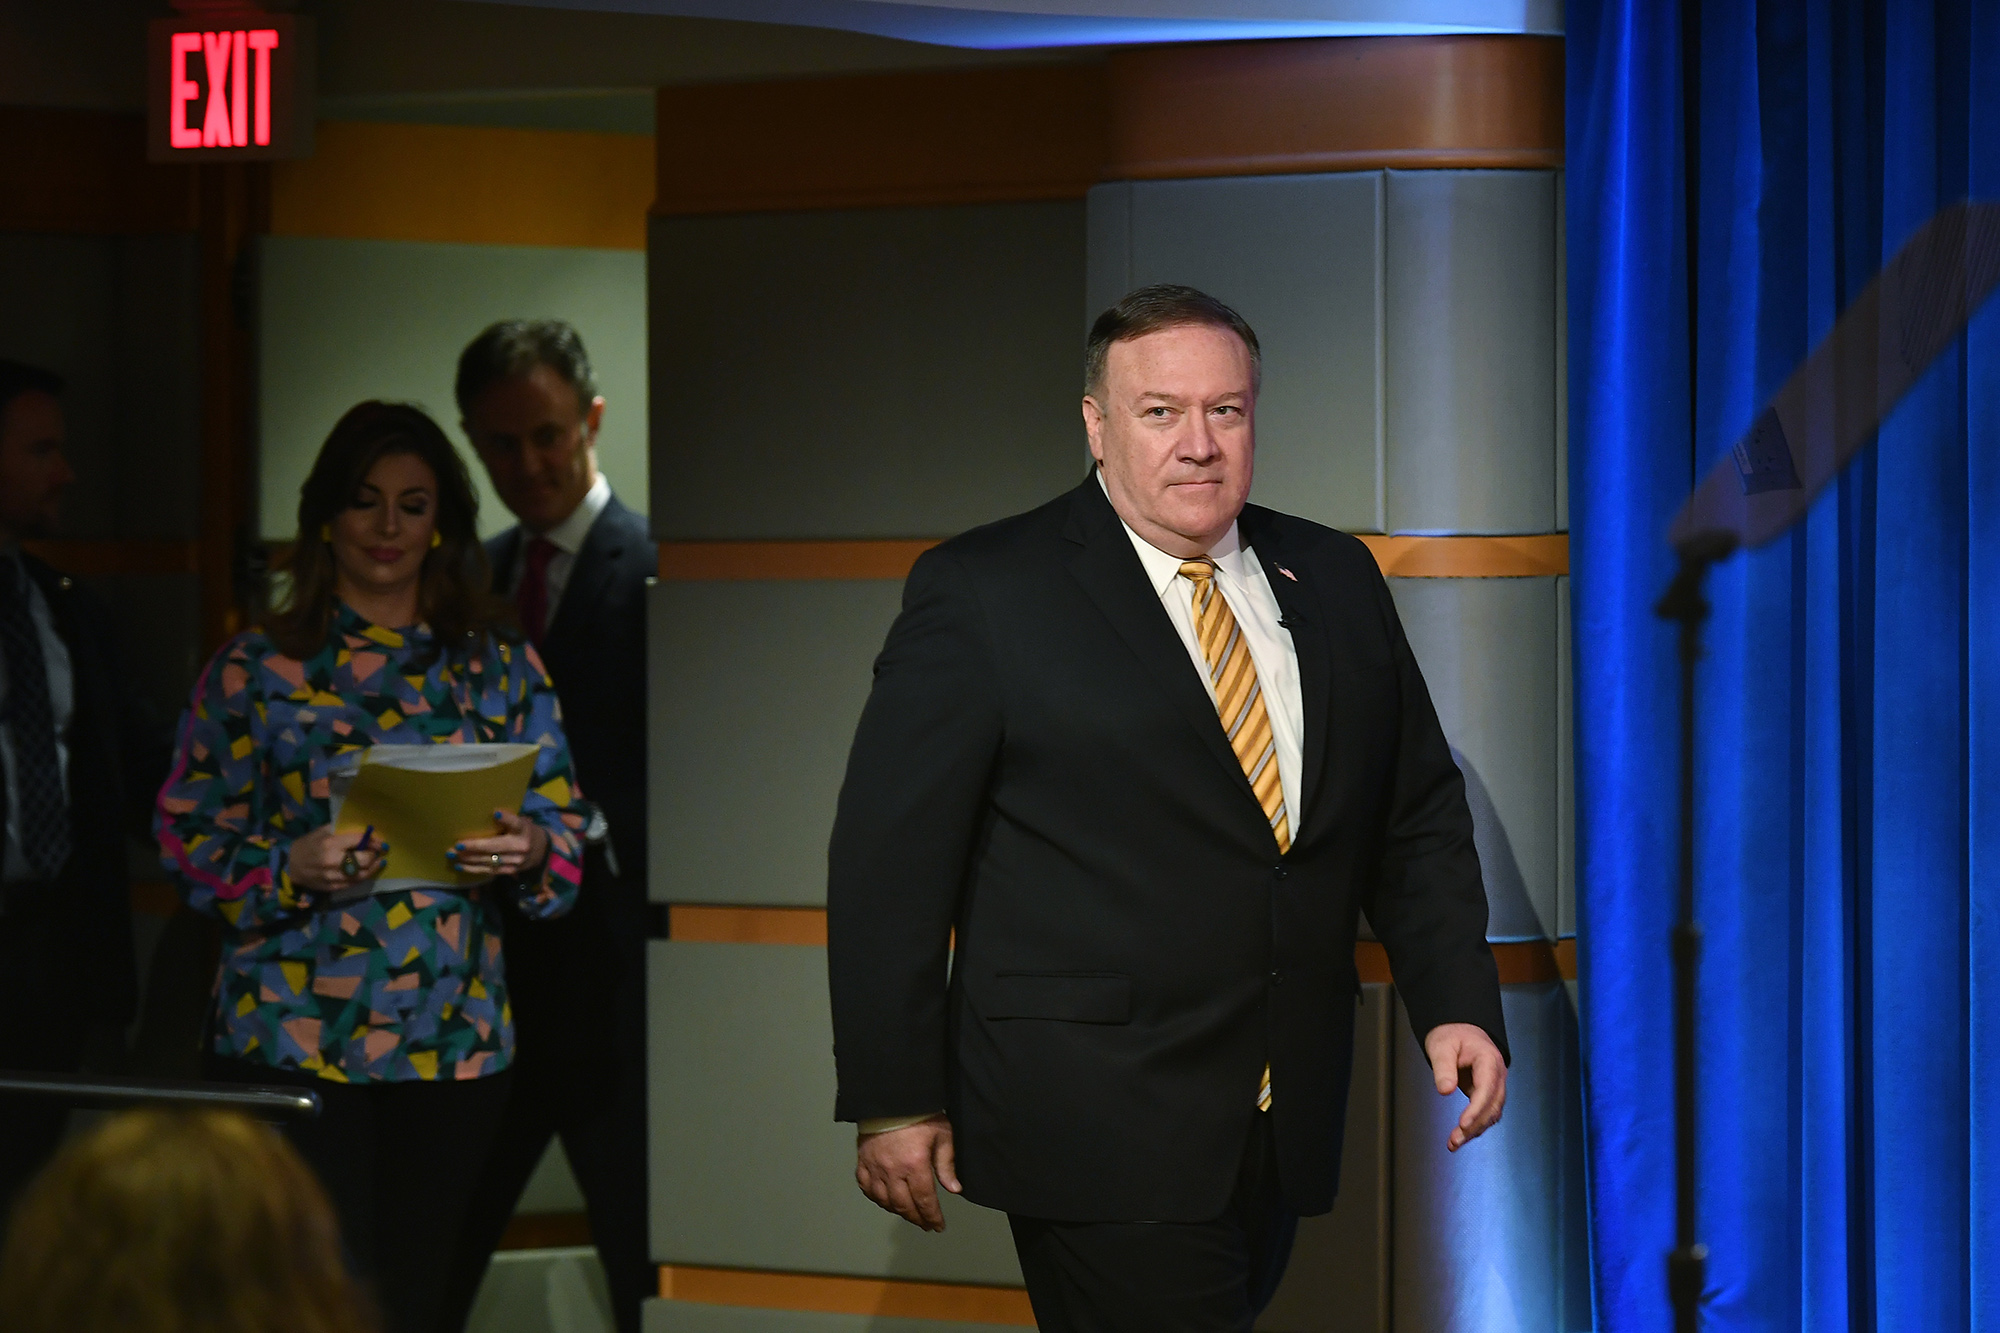 Secretary of State Mike Pompeo arrives for a press conference at the State Department in Washington, DC on June 24.